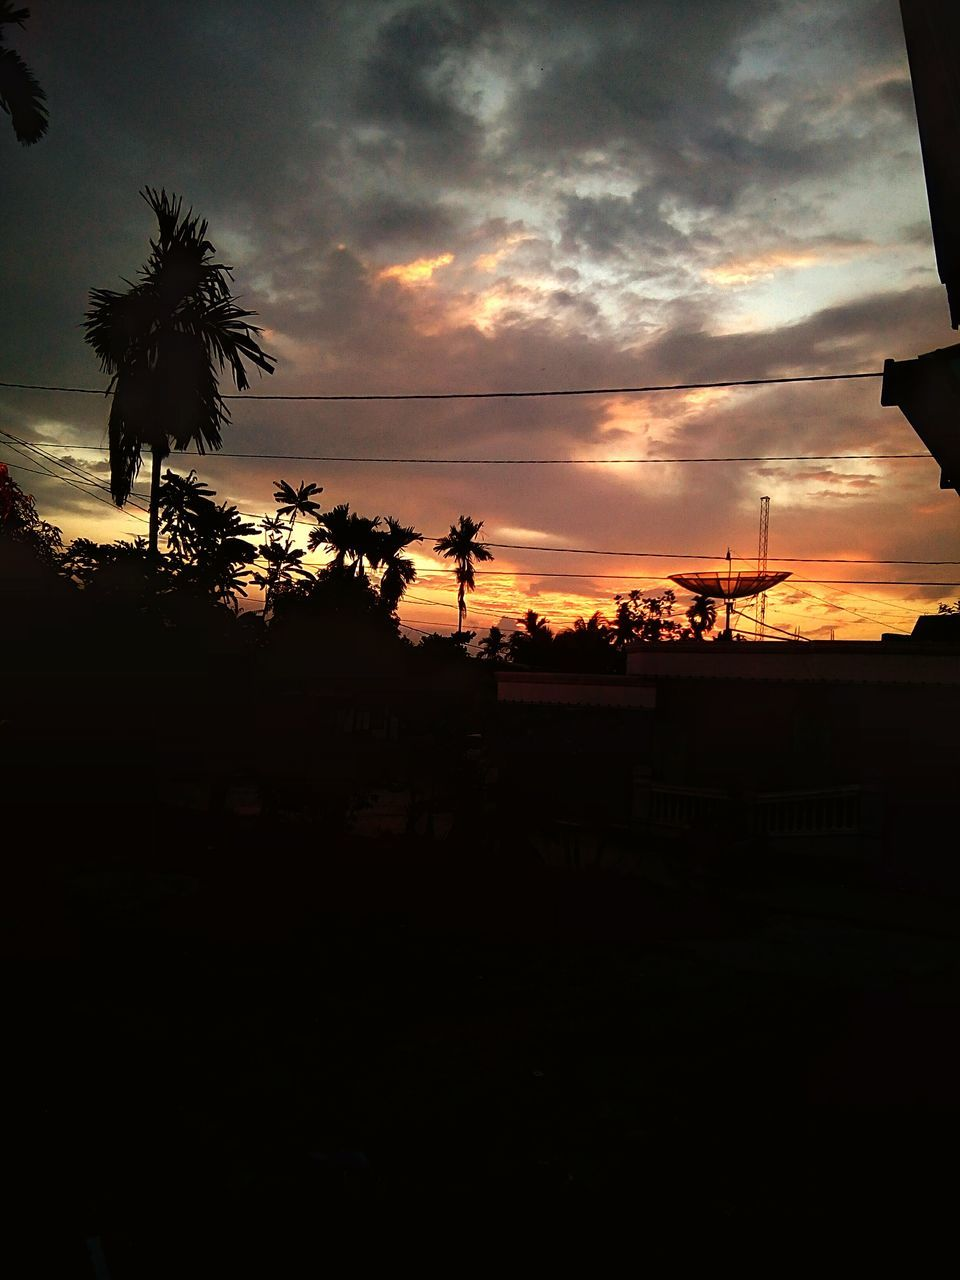 sunset, silhouette, tree, palm tree, sky, cloud - sky, nature, no people, beauty in nature, outdoors